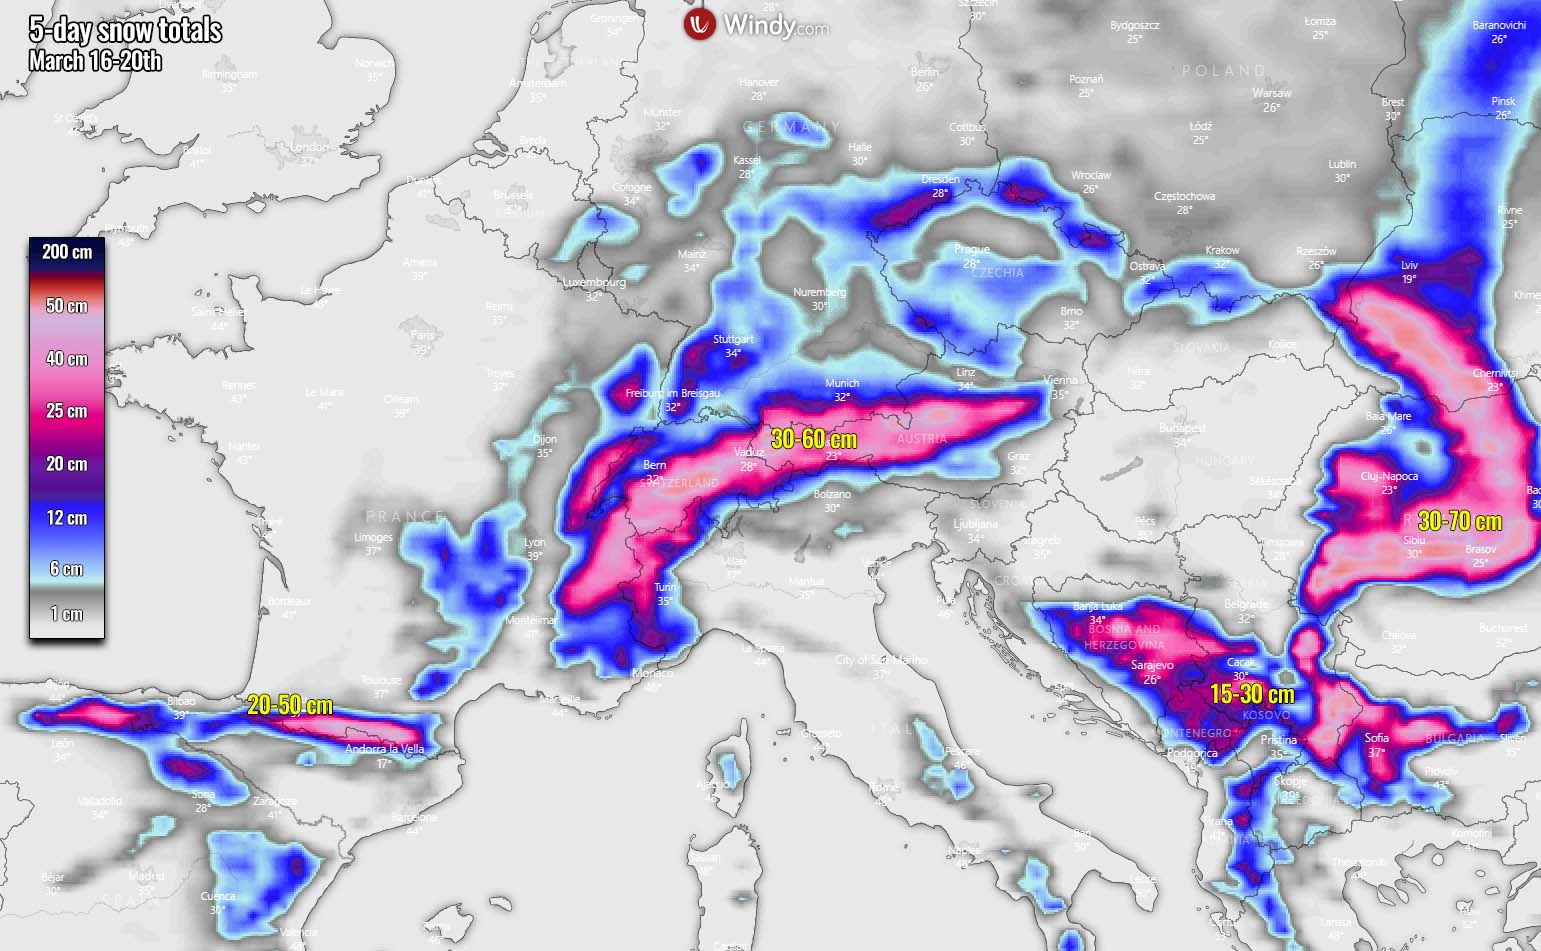 pattern-change-europe-cold-wave-snow-winter-snowfall-balkans-alps-spain